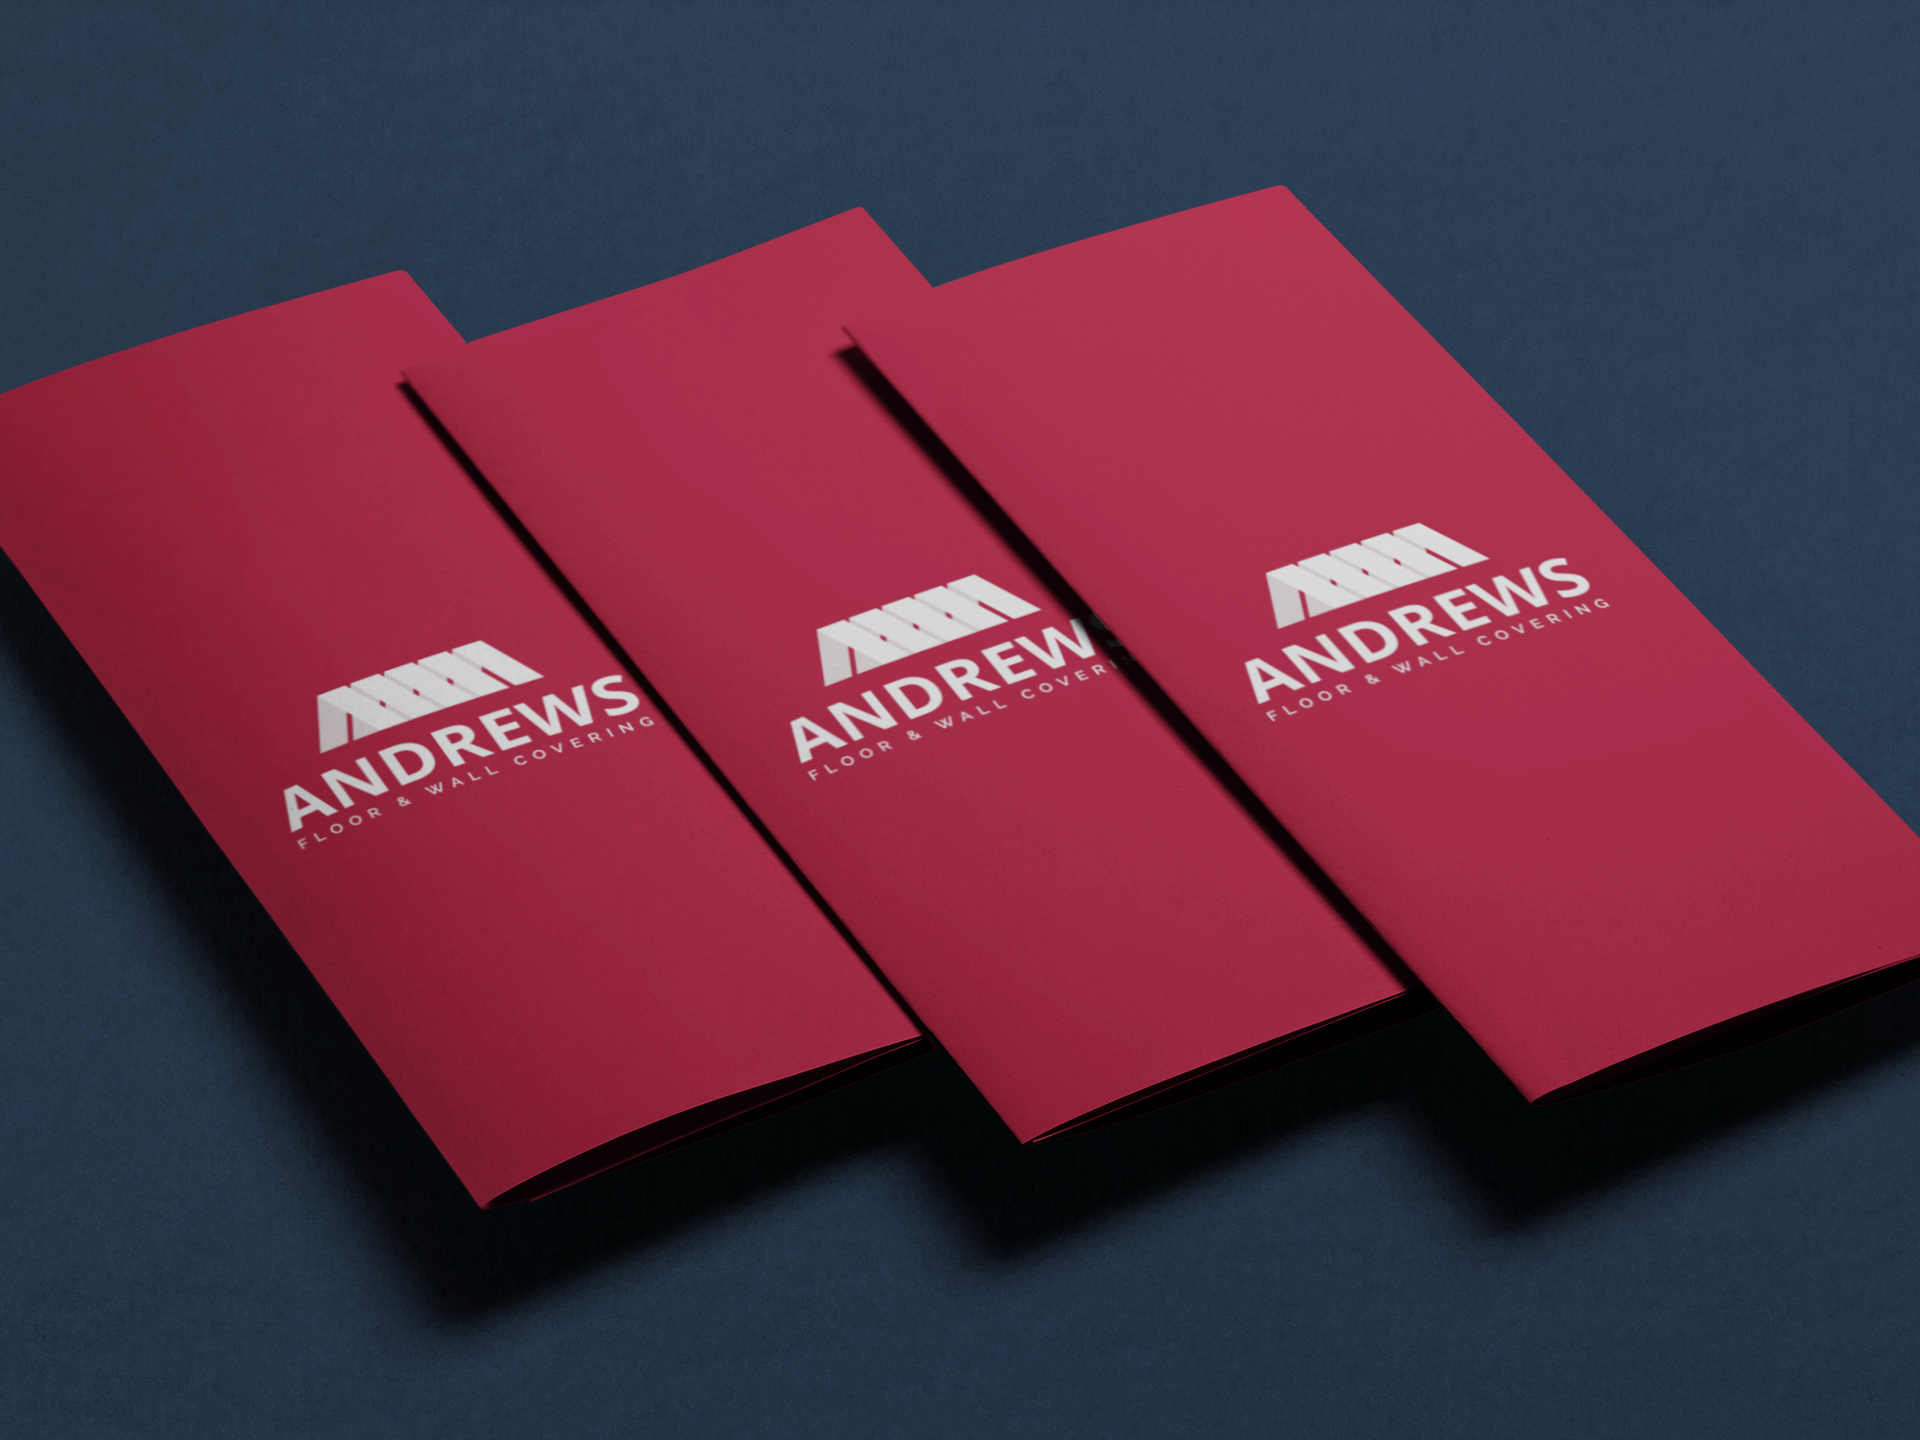 mockup-featuring-a-set-of-3-brochures-lying-over-a-smooth-background-a6358.png